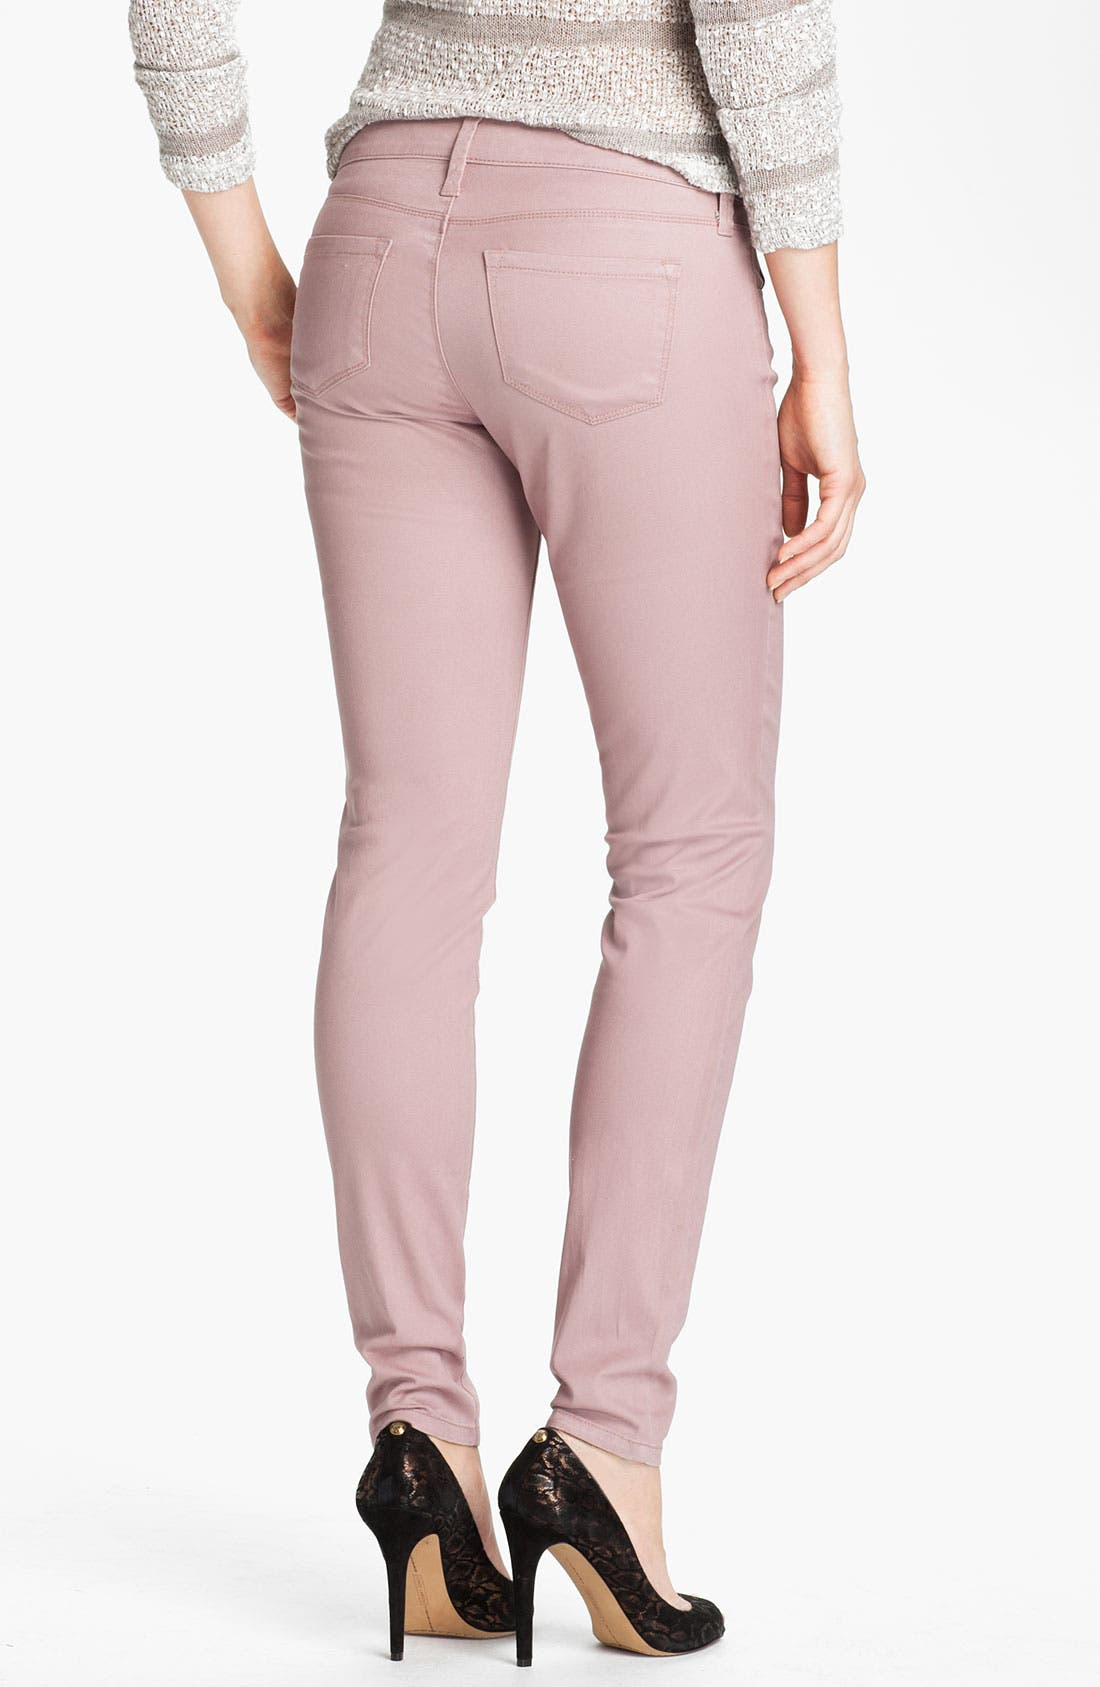 Alternate Image 2  - KUT from the Kloth 'Jennifer' Skinny Stretch Jeans (Rose) (Online Exclusive)